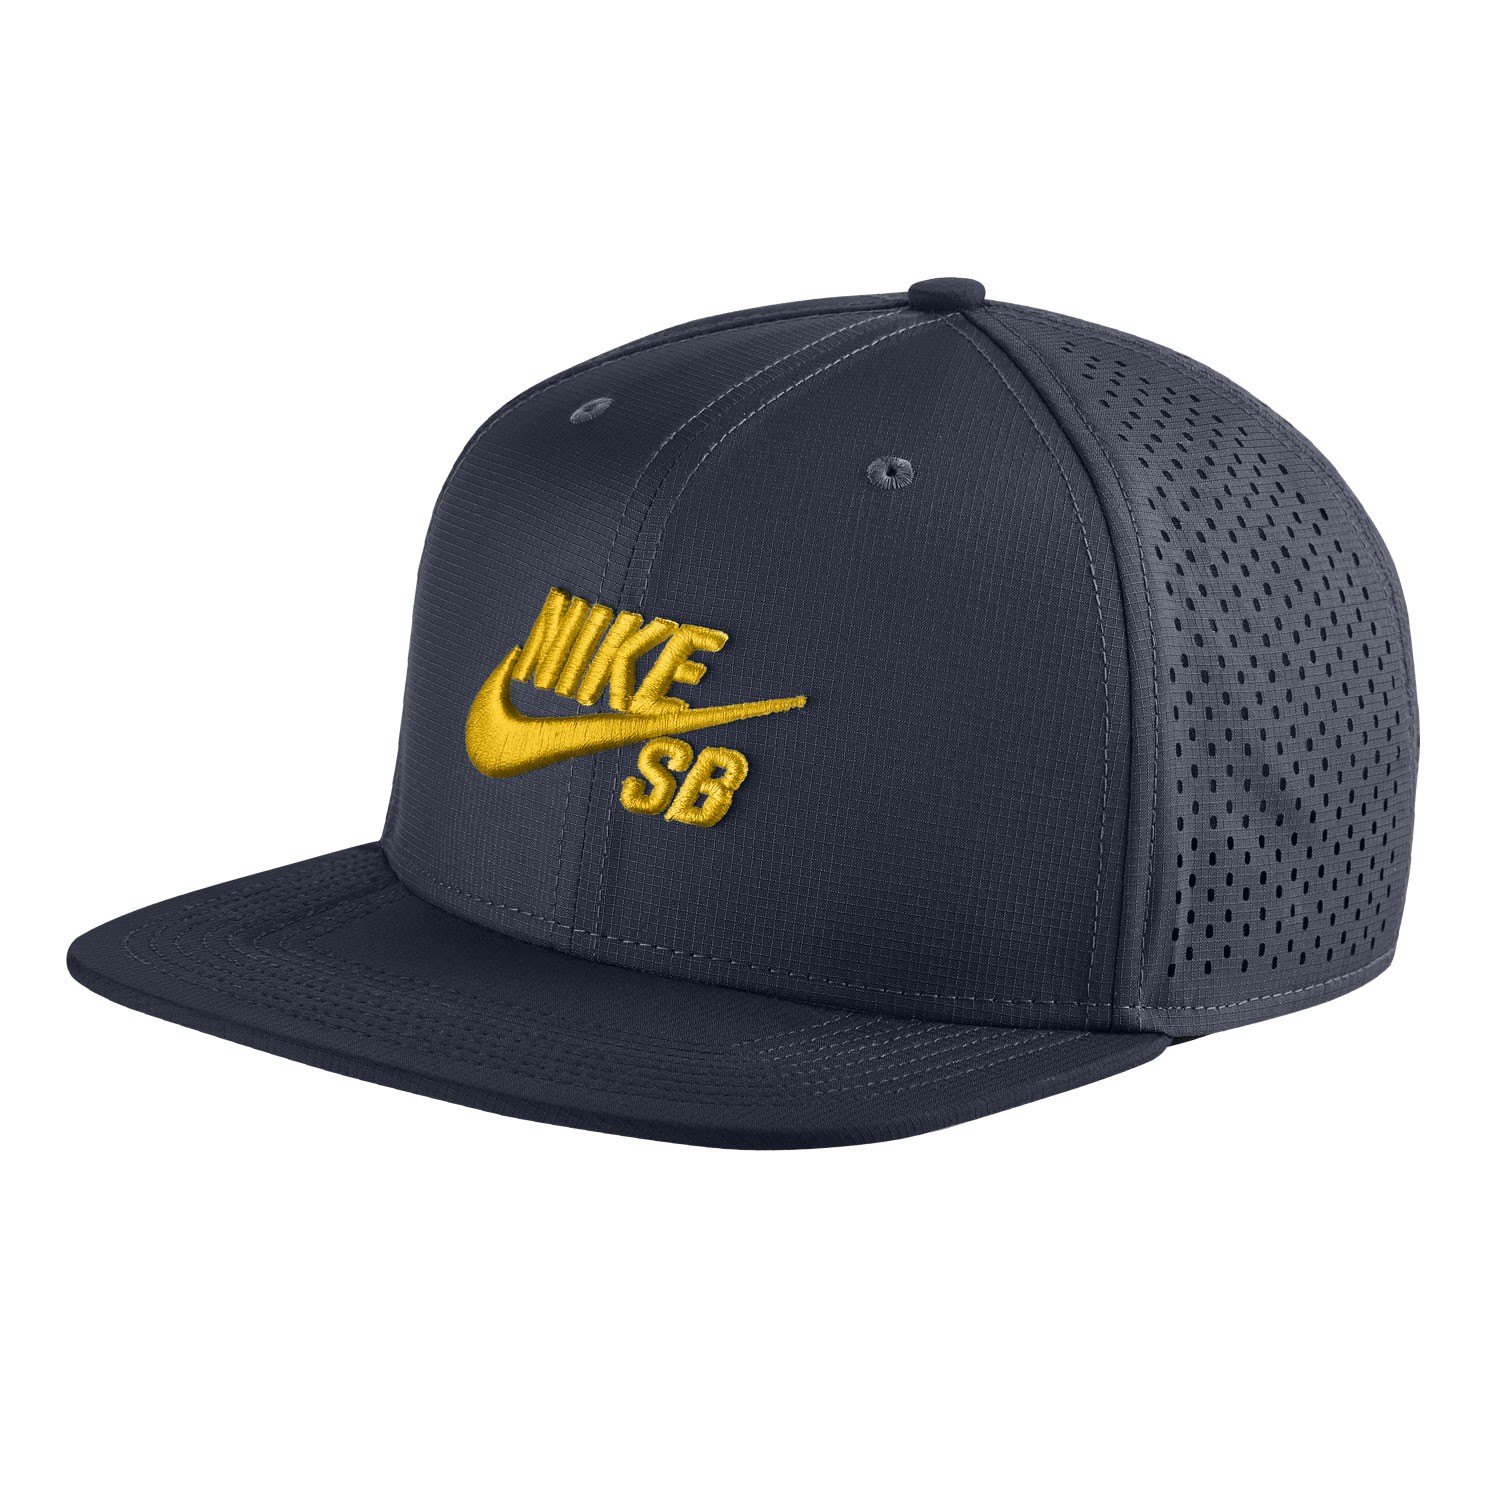 Kšiltovka Nike SB Trucker obsidian/black/tour yellow